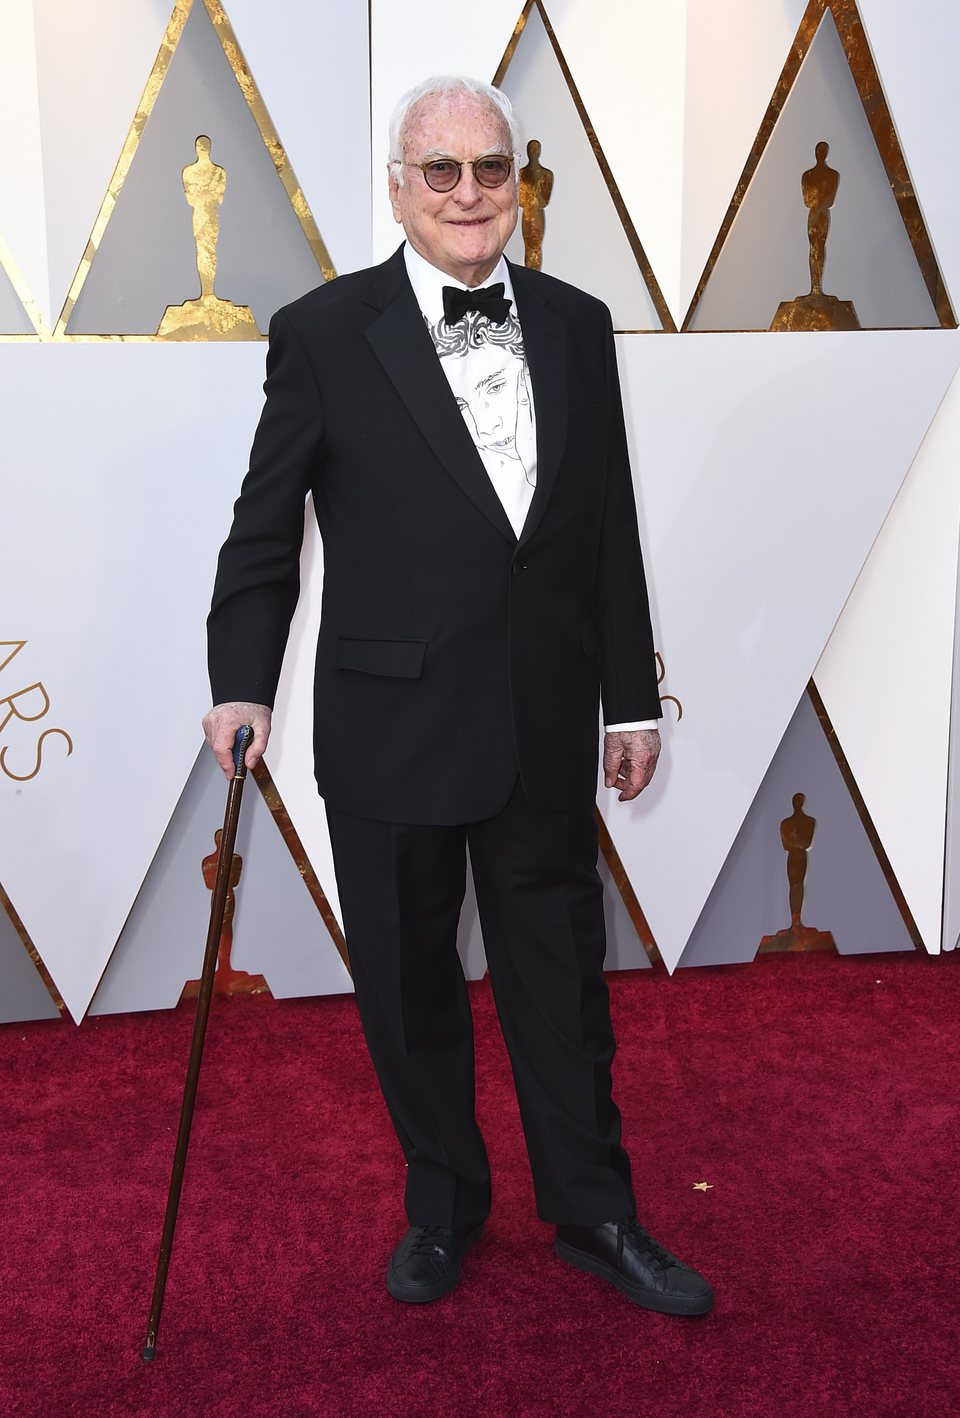 James Ivory at the Oscars 2018 red carpet